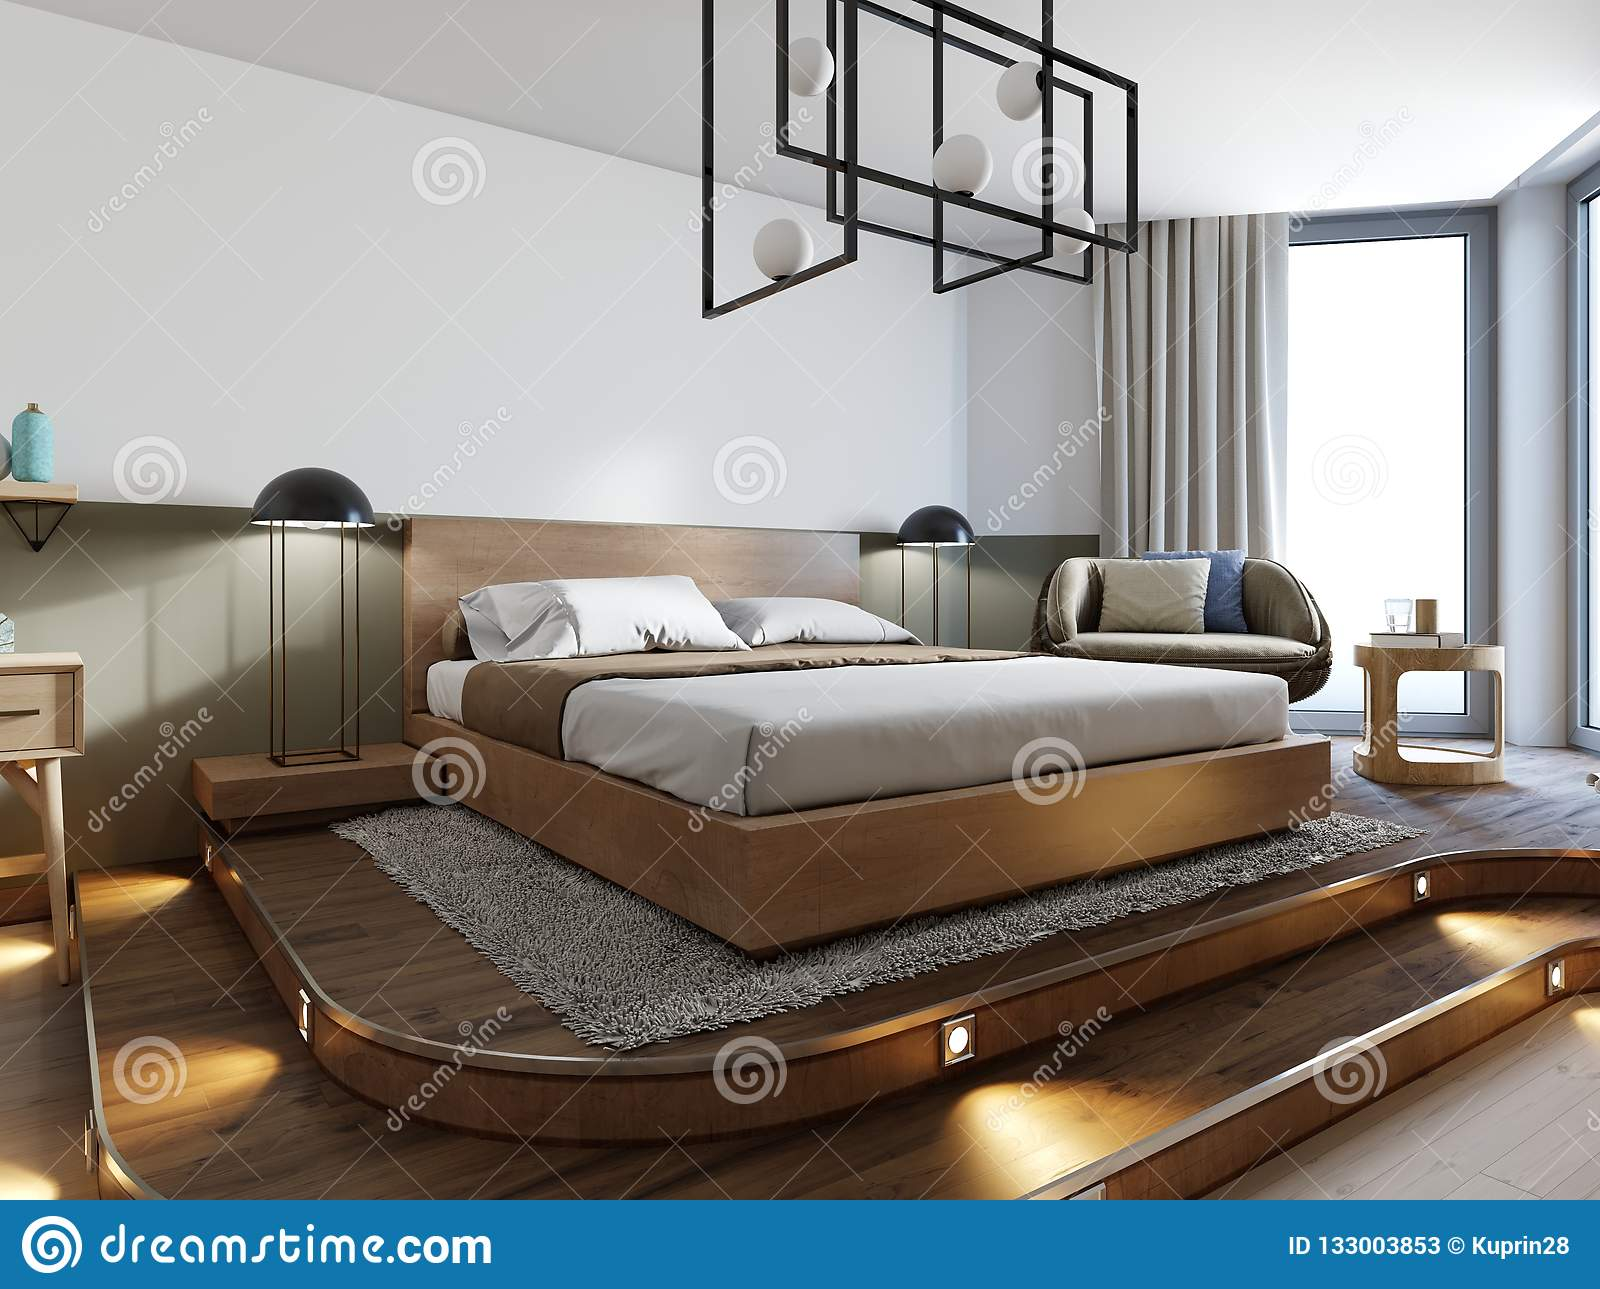 Wooden Loft Style Bedroom With Wooden Podium For Stand Bed Eco